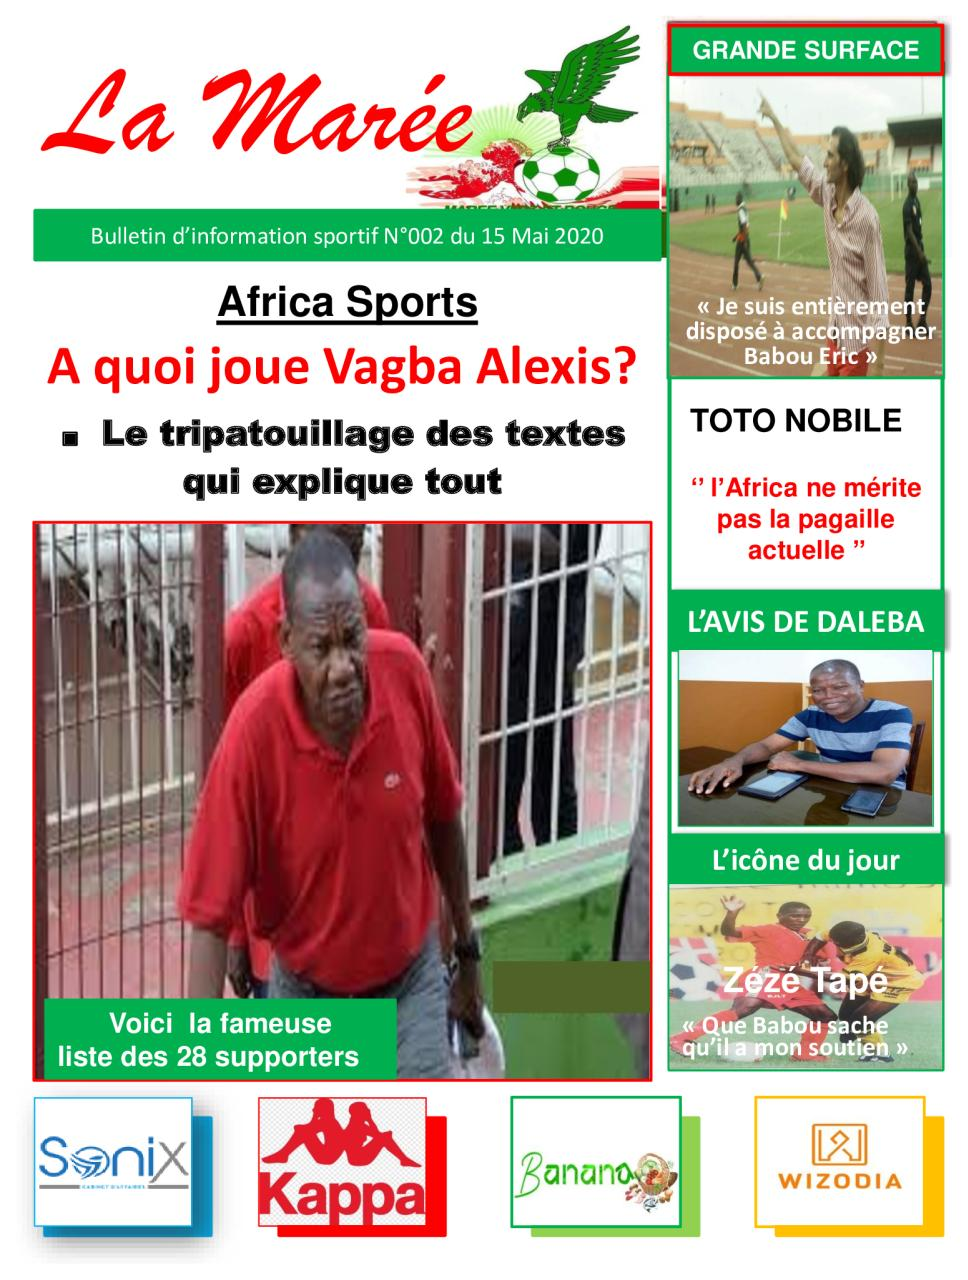 Le journal - LA MAREE - N°002 du 15 Mai 2020.pdf - page 1/10